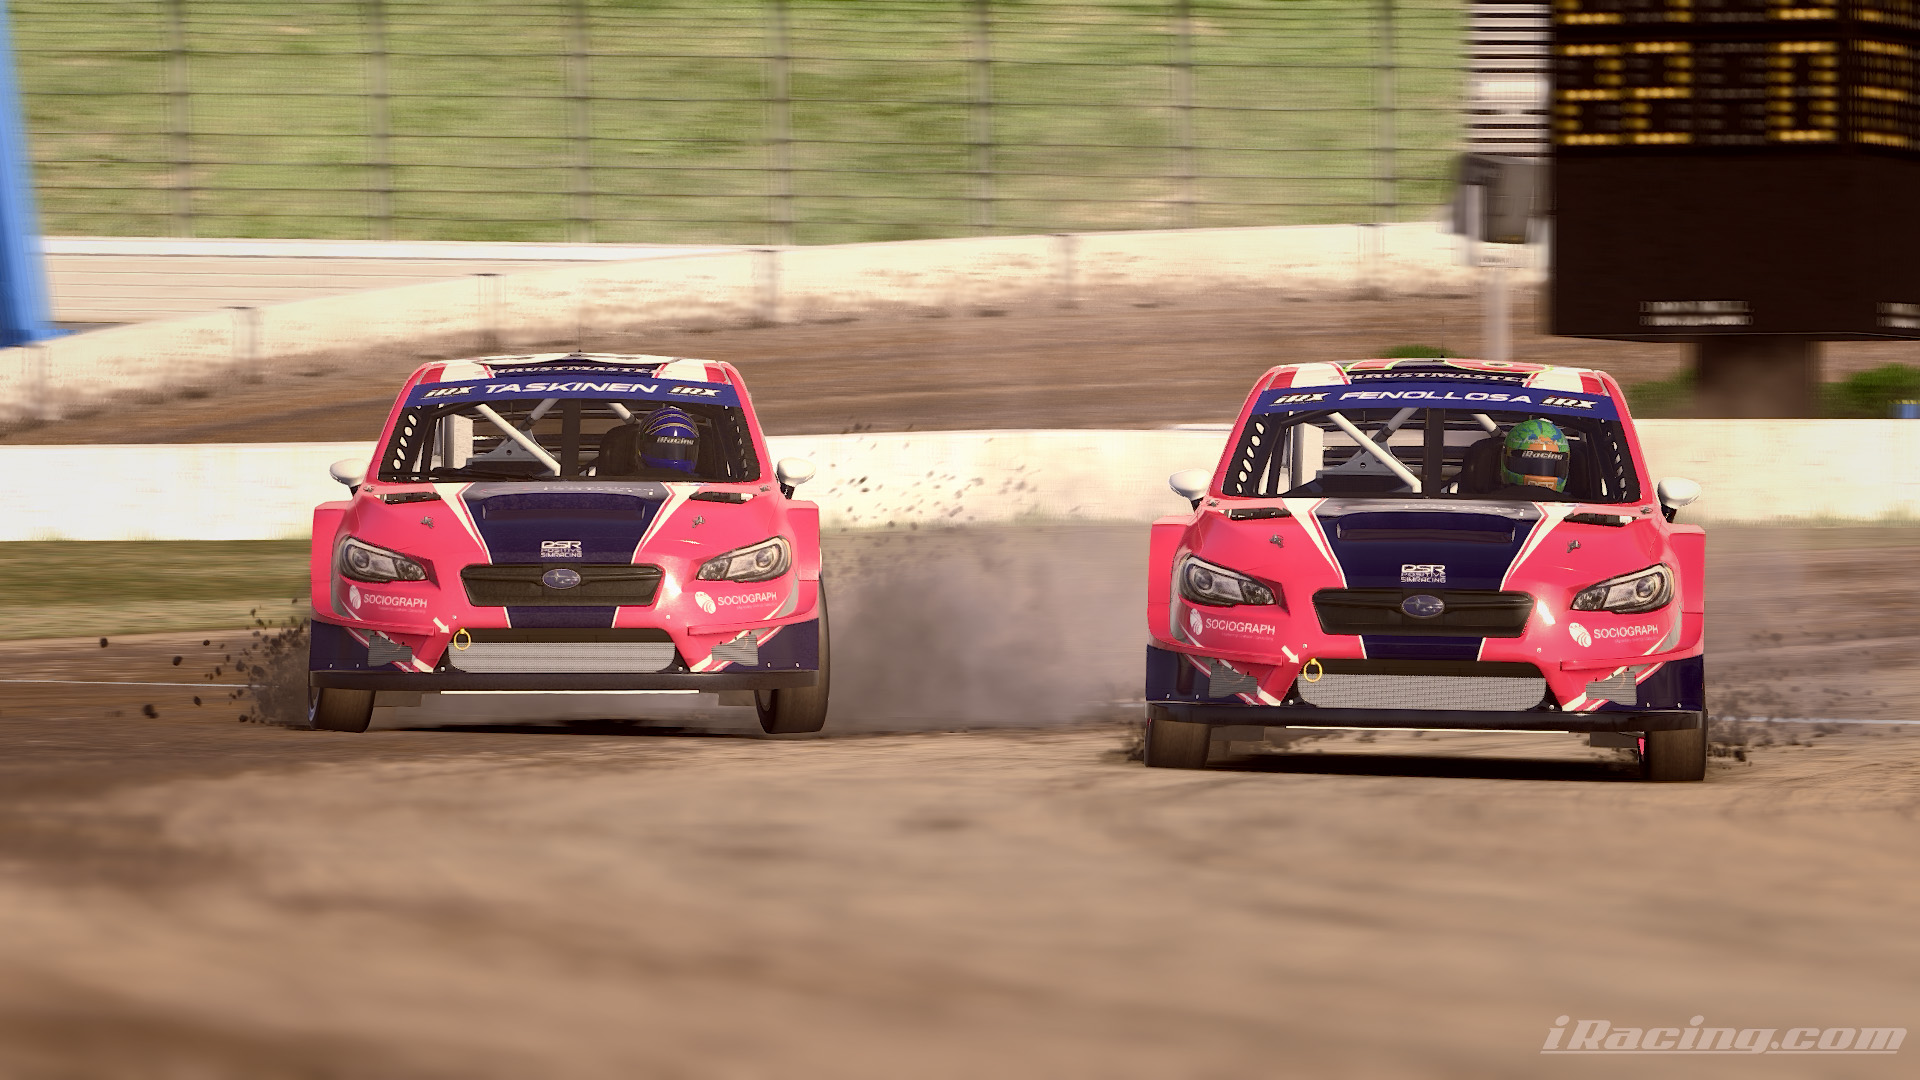 P5, and a race victory in our fantastic first participation in a RallyCross World Championship